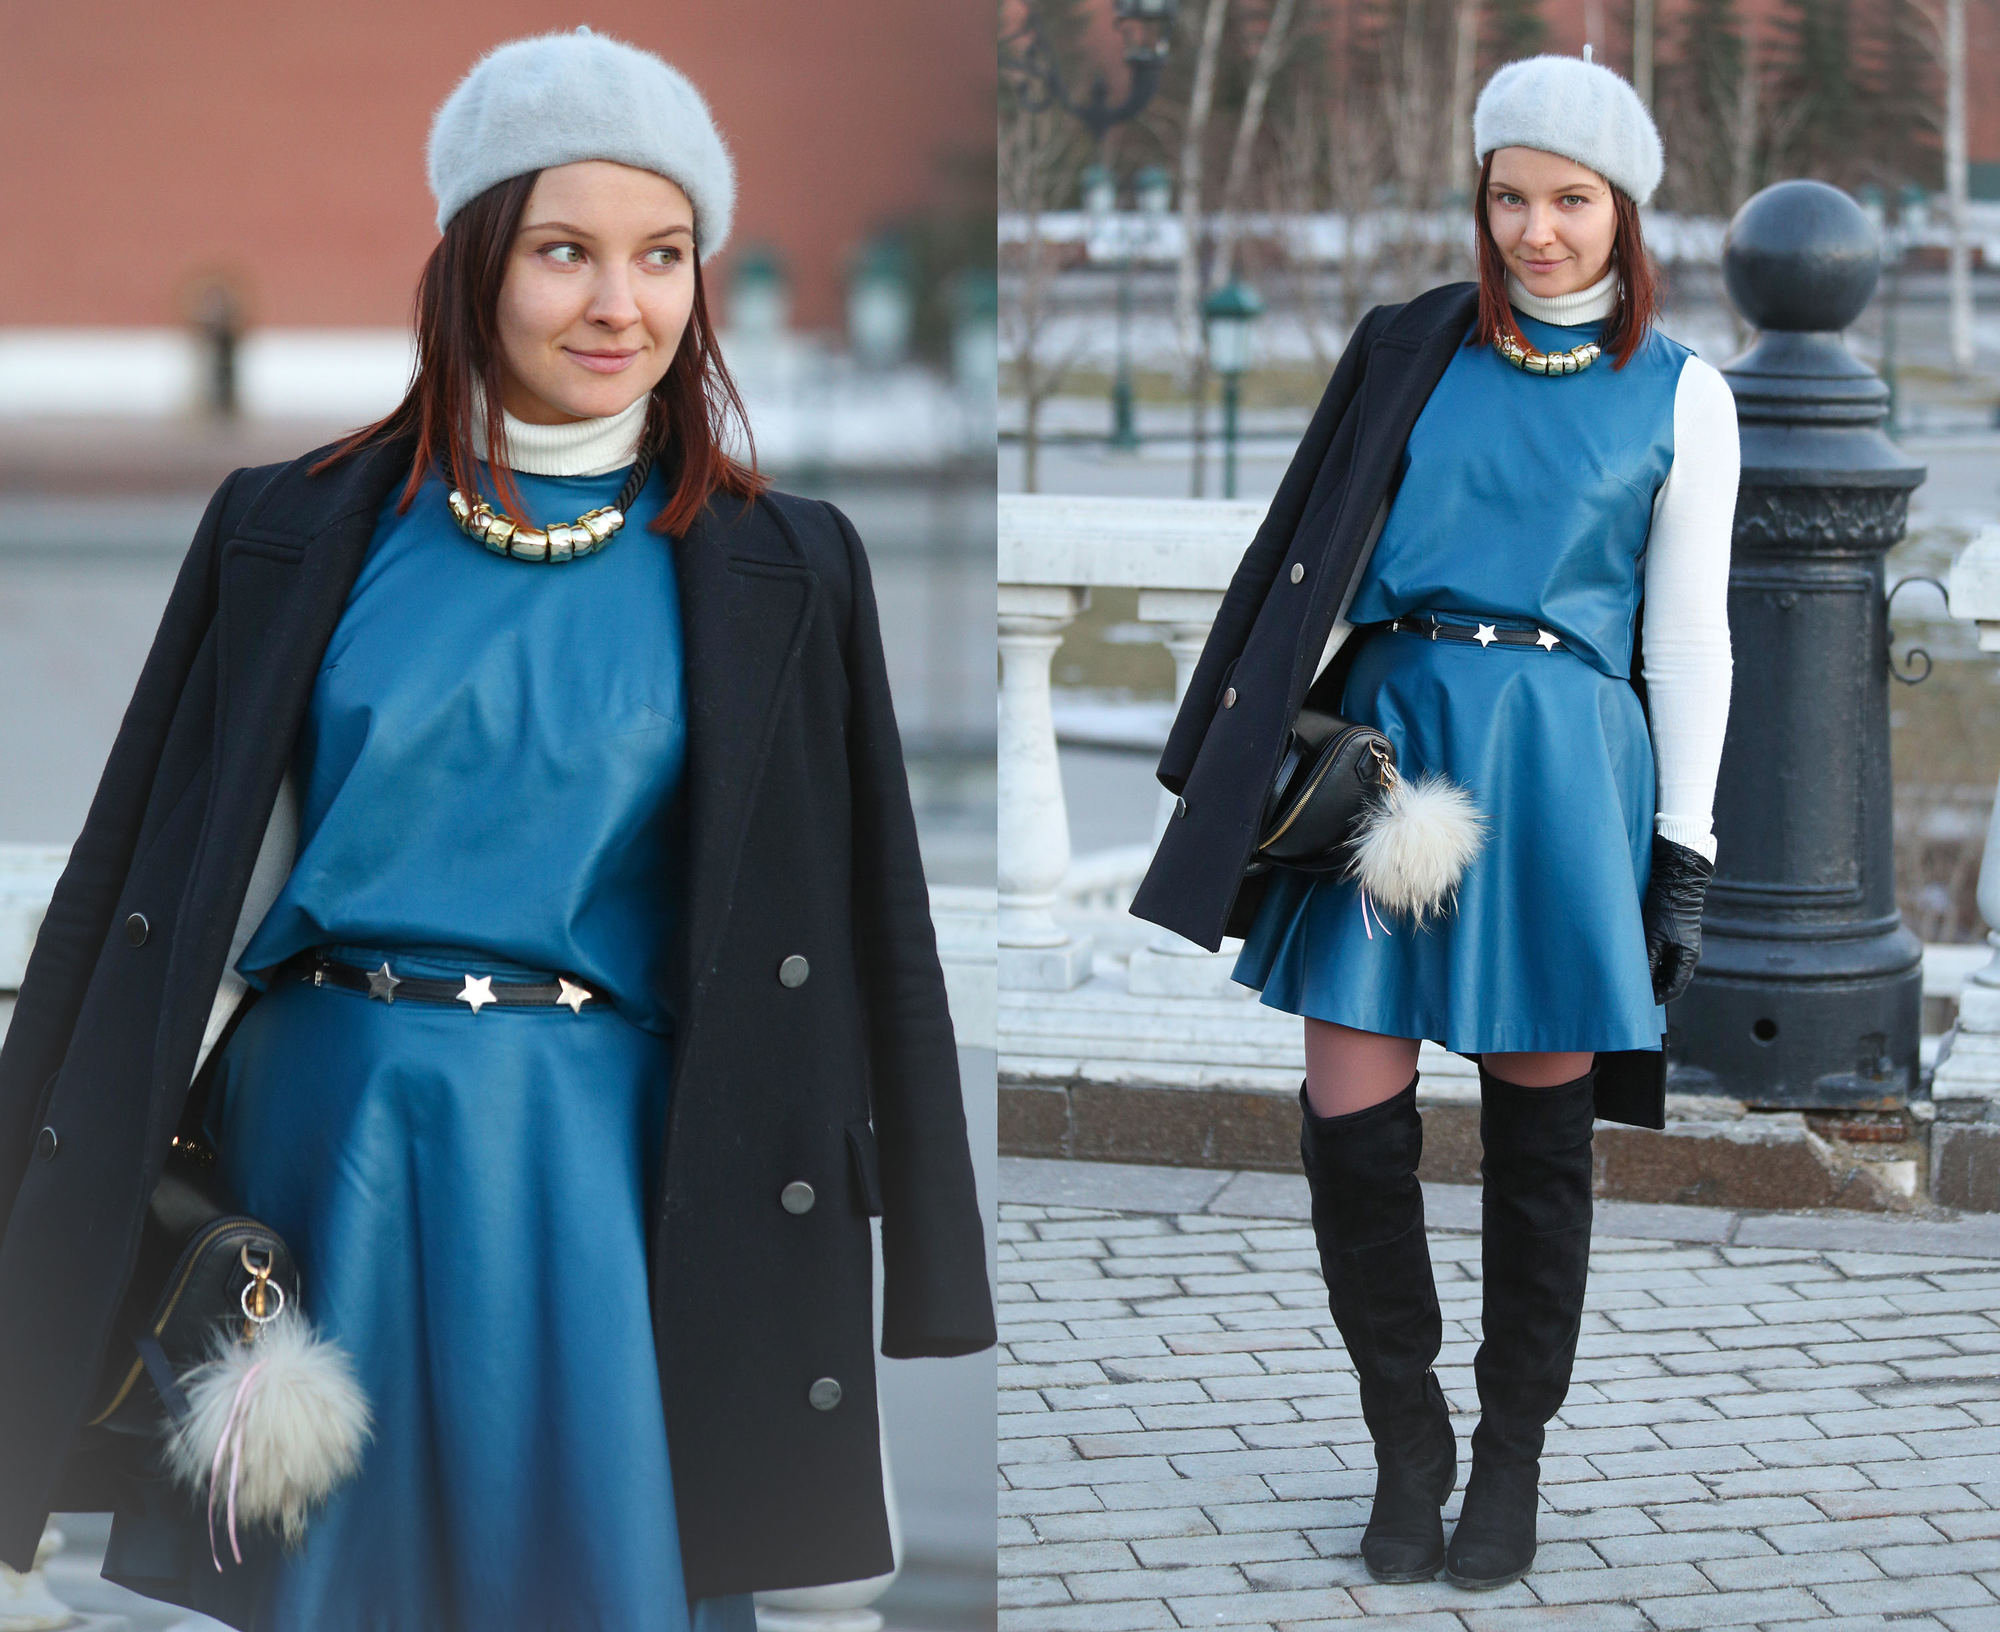 Day 4 - Streetstyle. #MBFWRussia